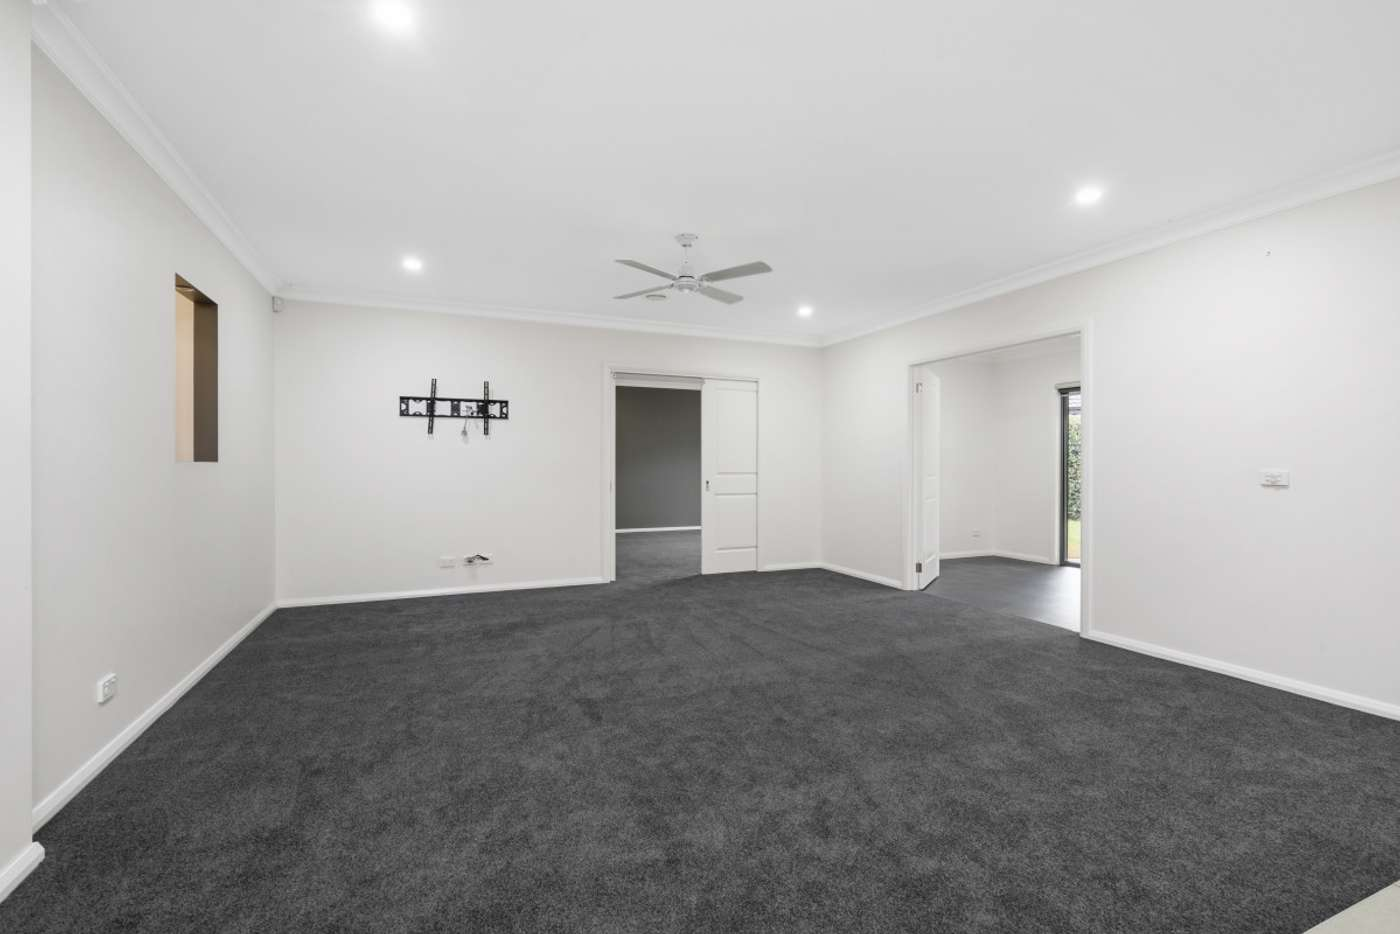 Sixth view of Homely house listing, 19 Mark Avenue, Sale VIC 3850